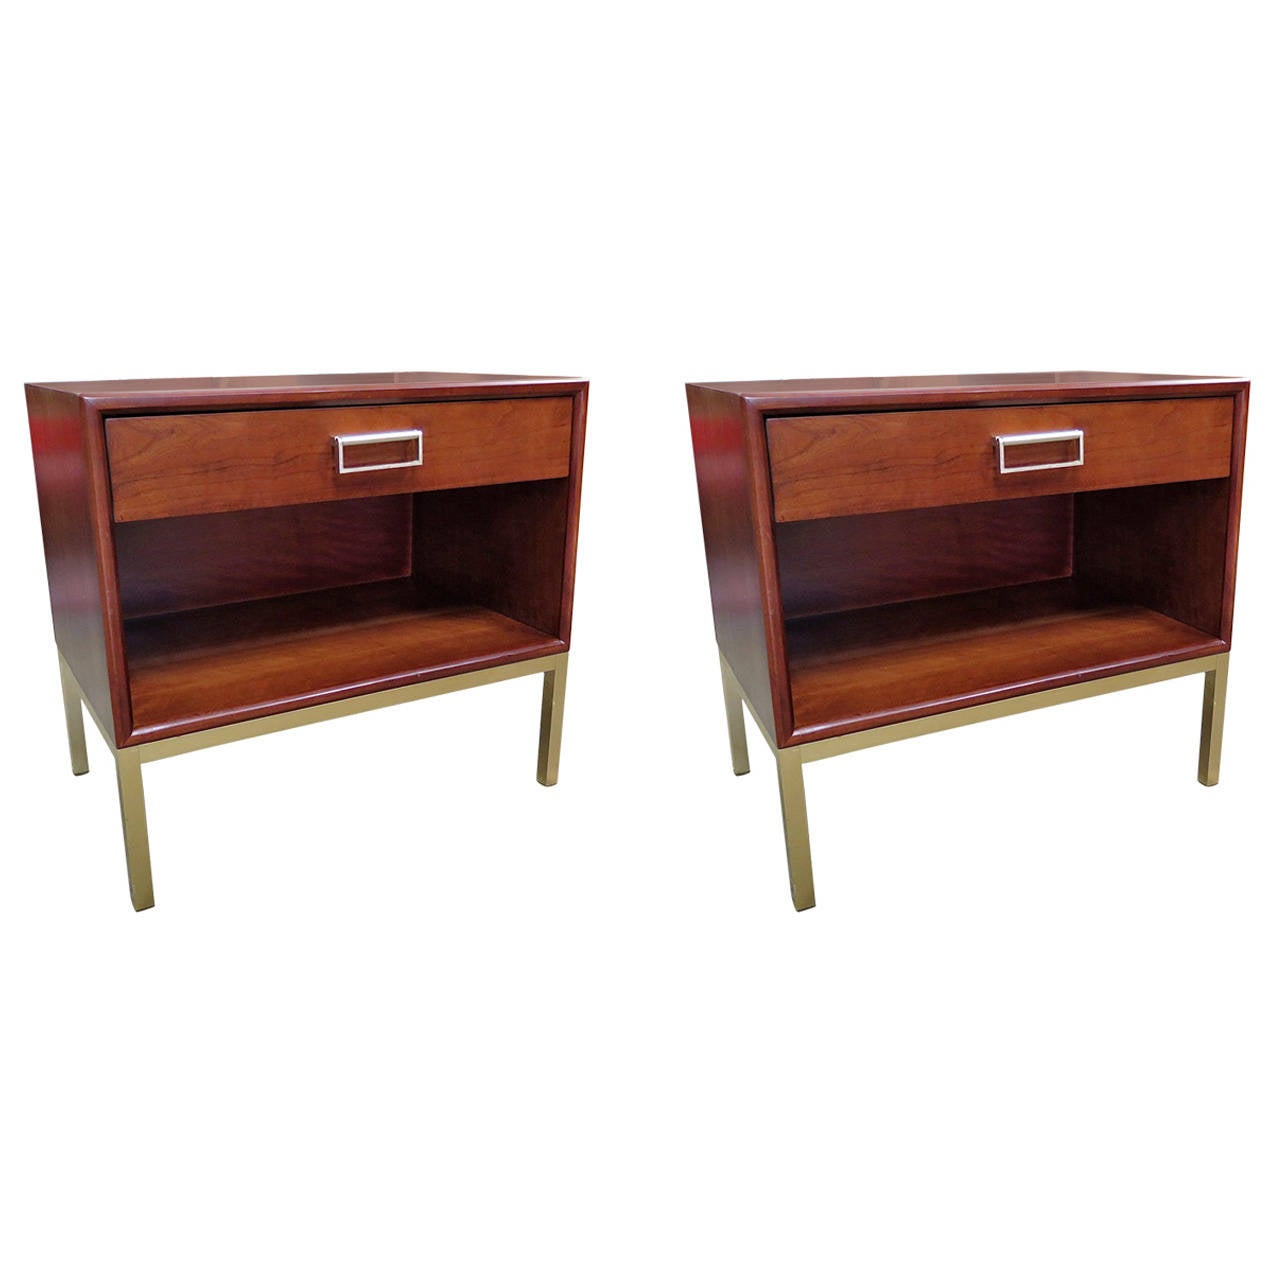 "1950 Drexel ""Sun Coast"" Pair of Night Stands-Kipp Stewart"